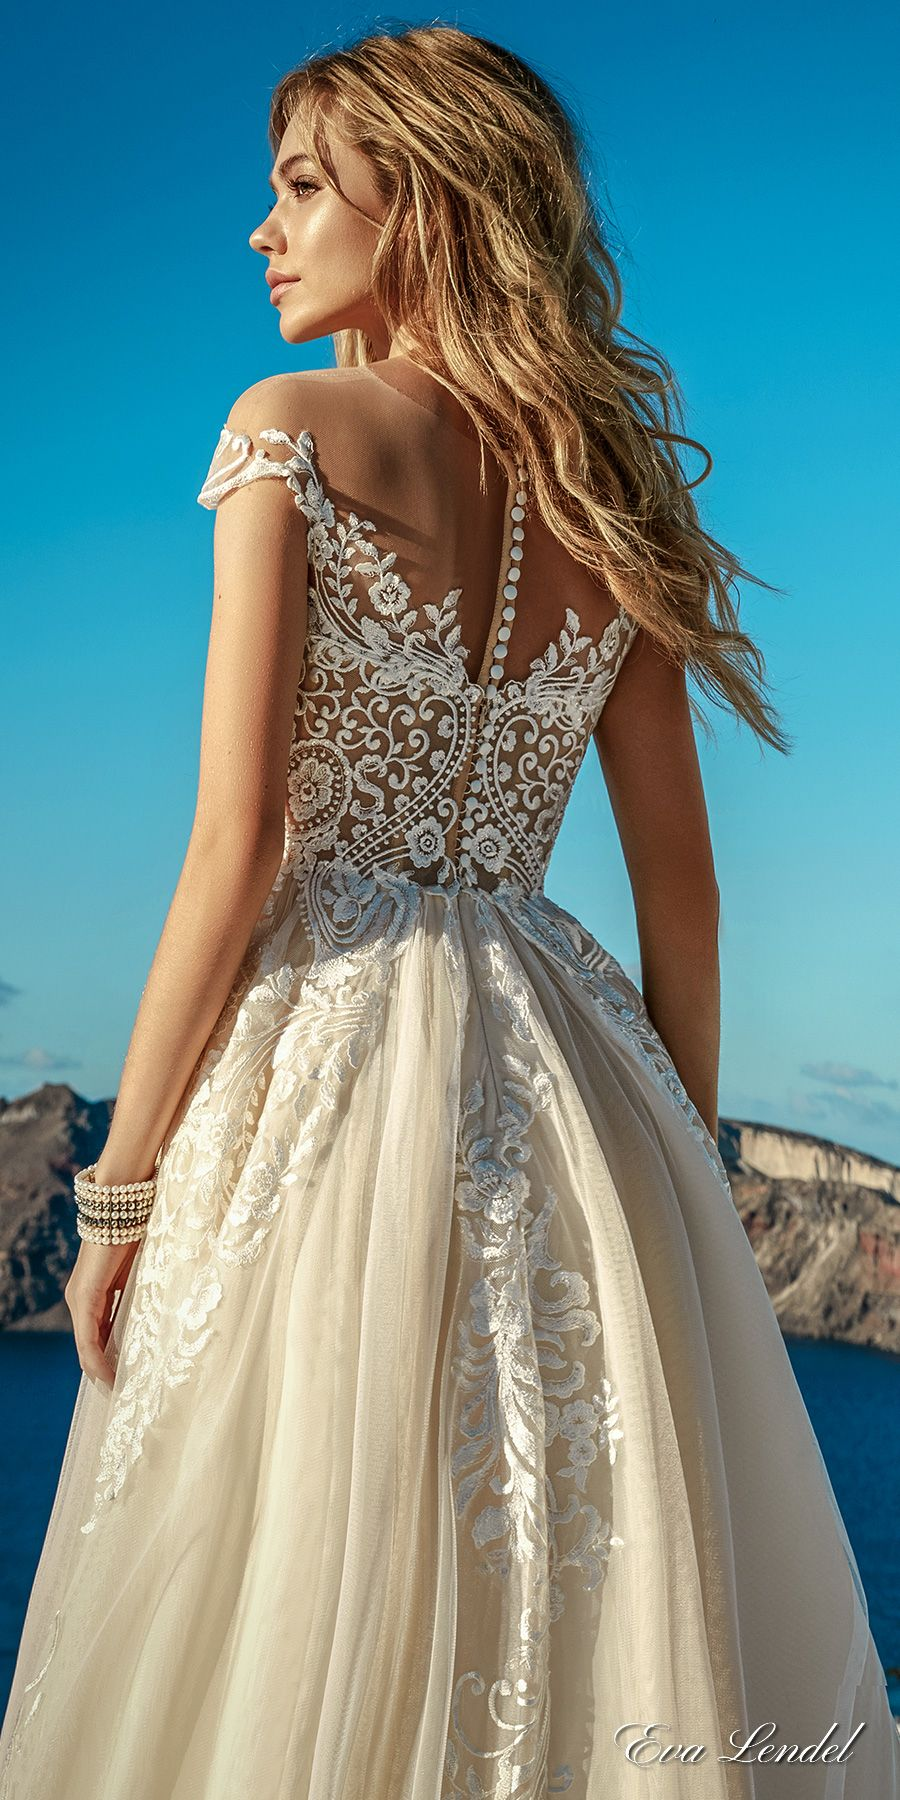 eva lendel 2017 bridal cap sleeves sweetheart neckline heavily embellished  bodice romantic ivory color a line wedding dress lace back chapel train  (cameron) ... bab47ea0a888